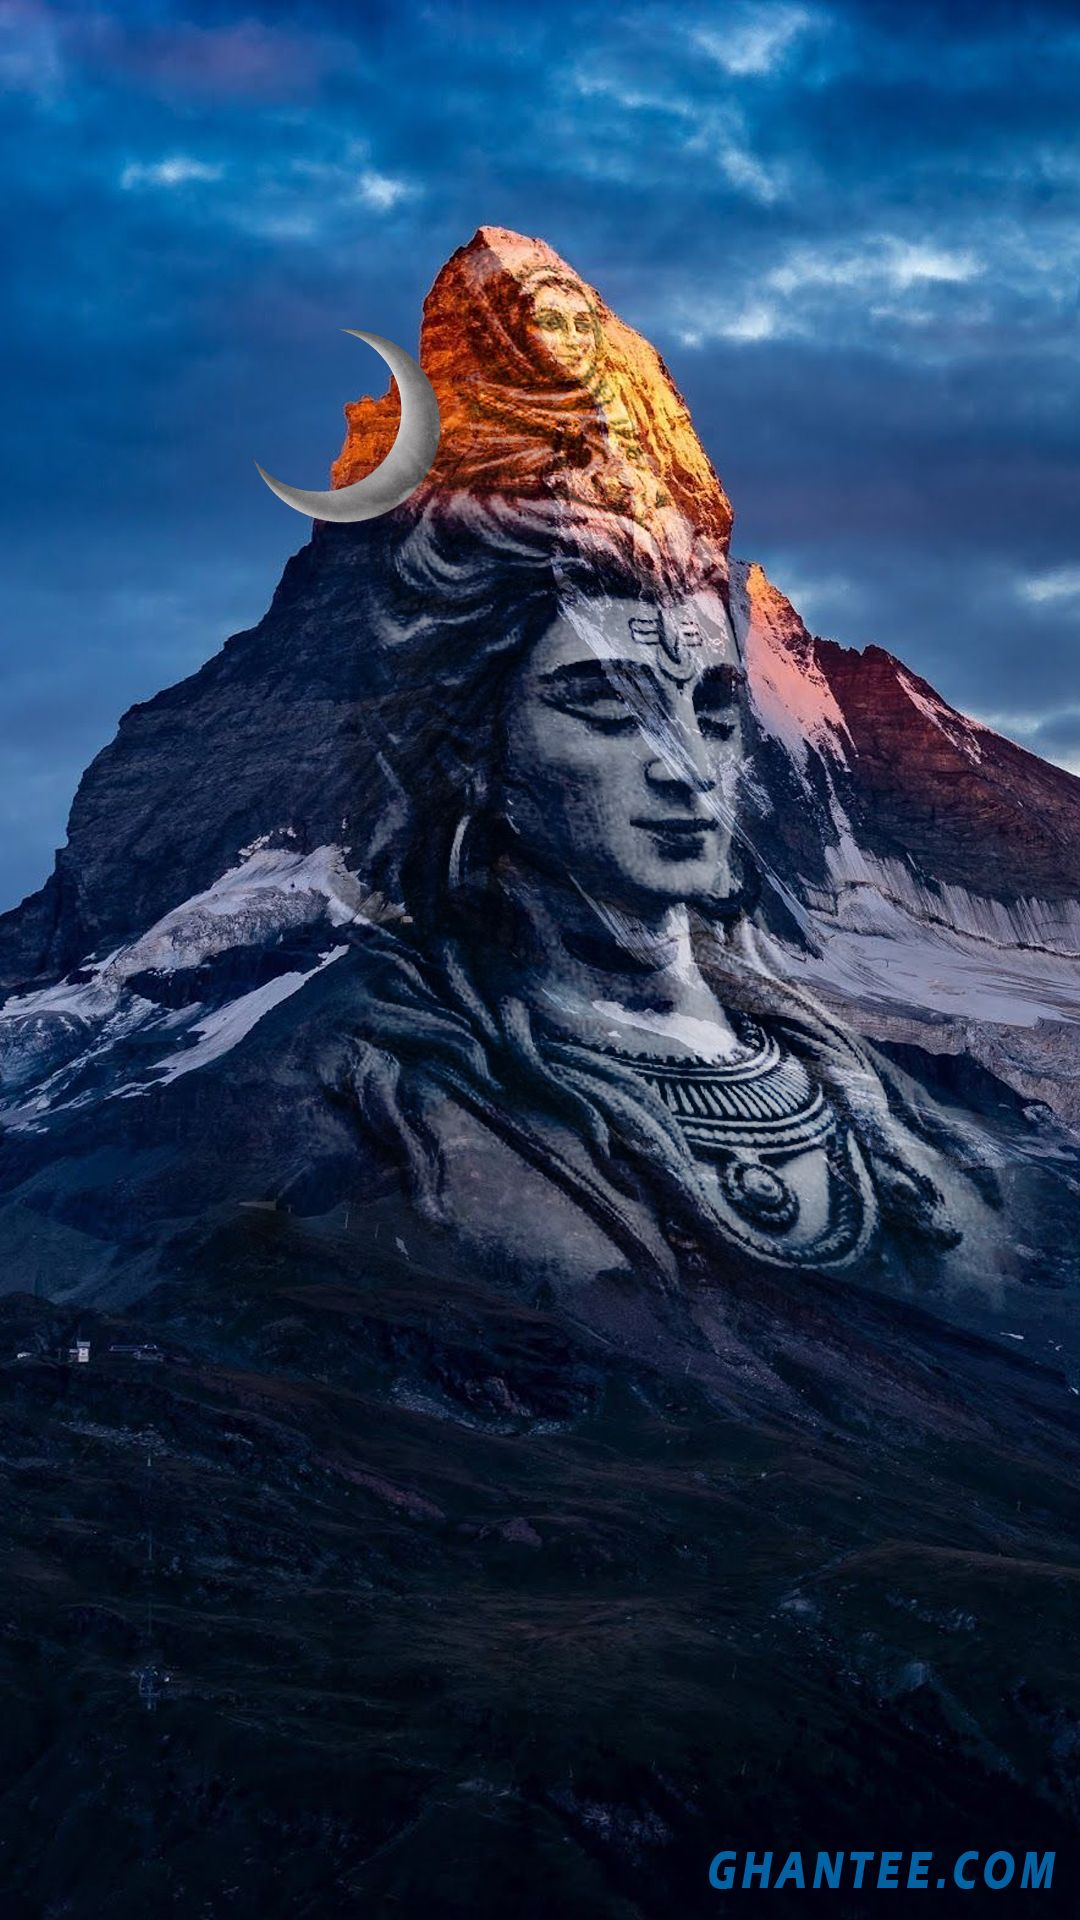 lord shiva kailash mountain phone wallpaper HD | Ghantee ...